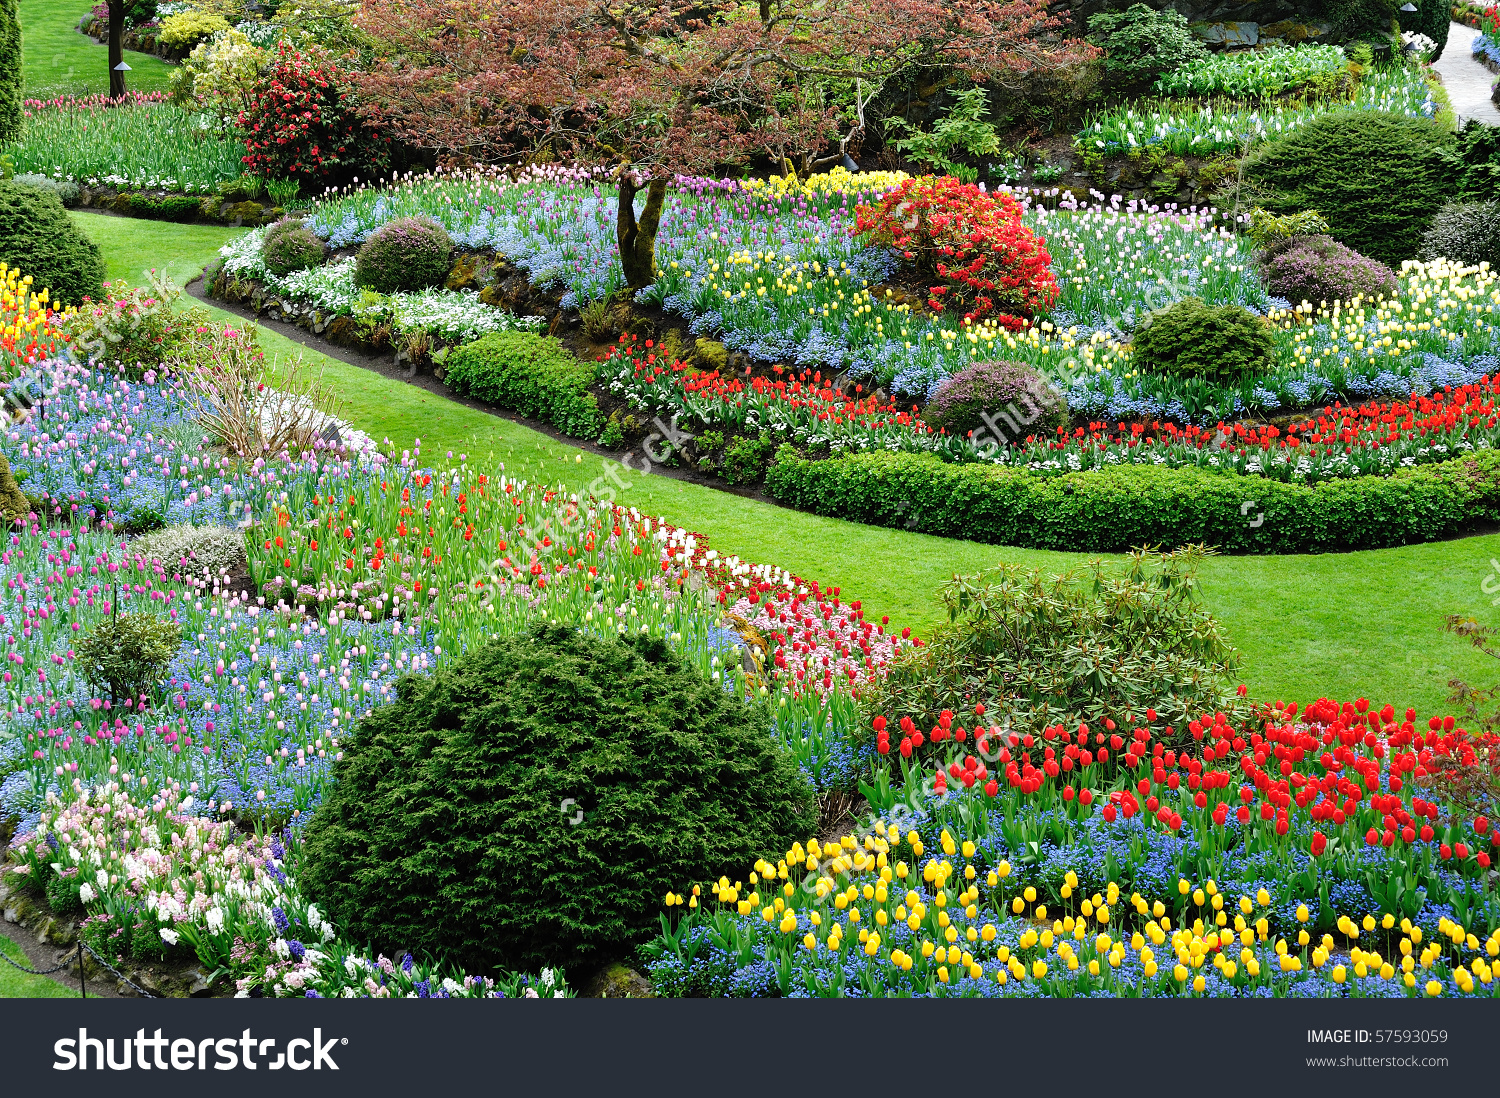 Sunken Garden Inside Historic Butchart Gardens Stock Photo.